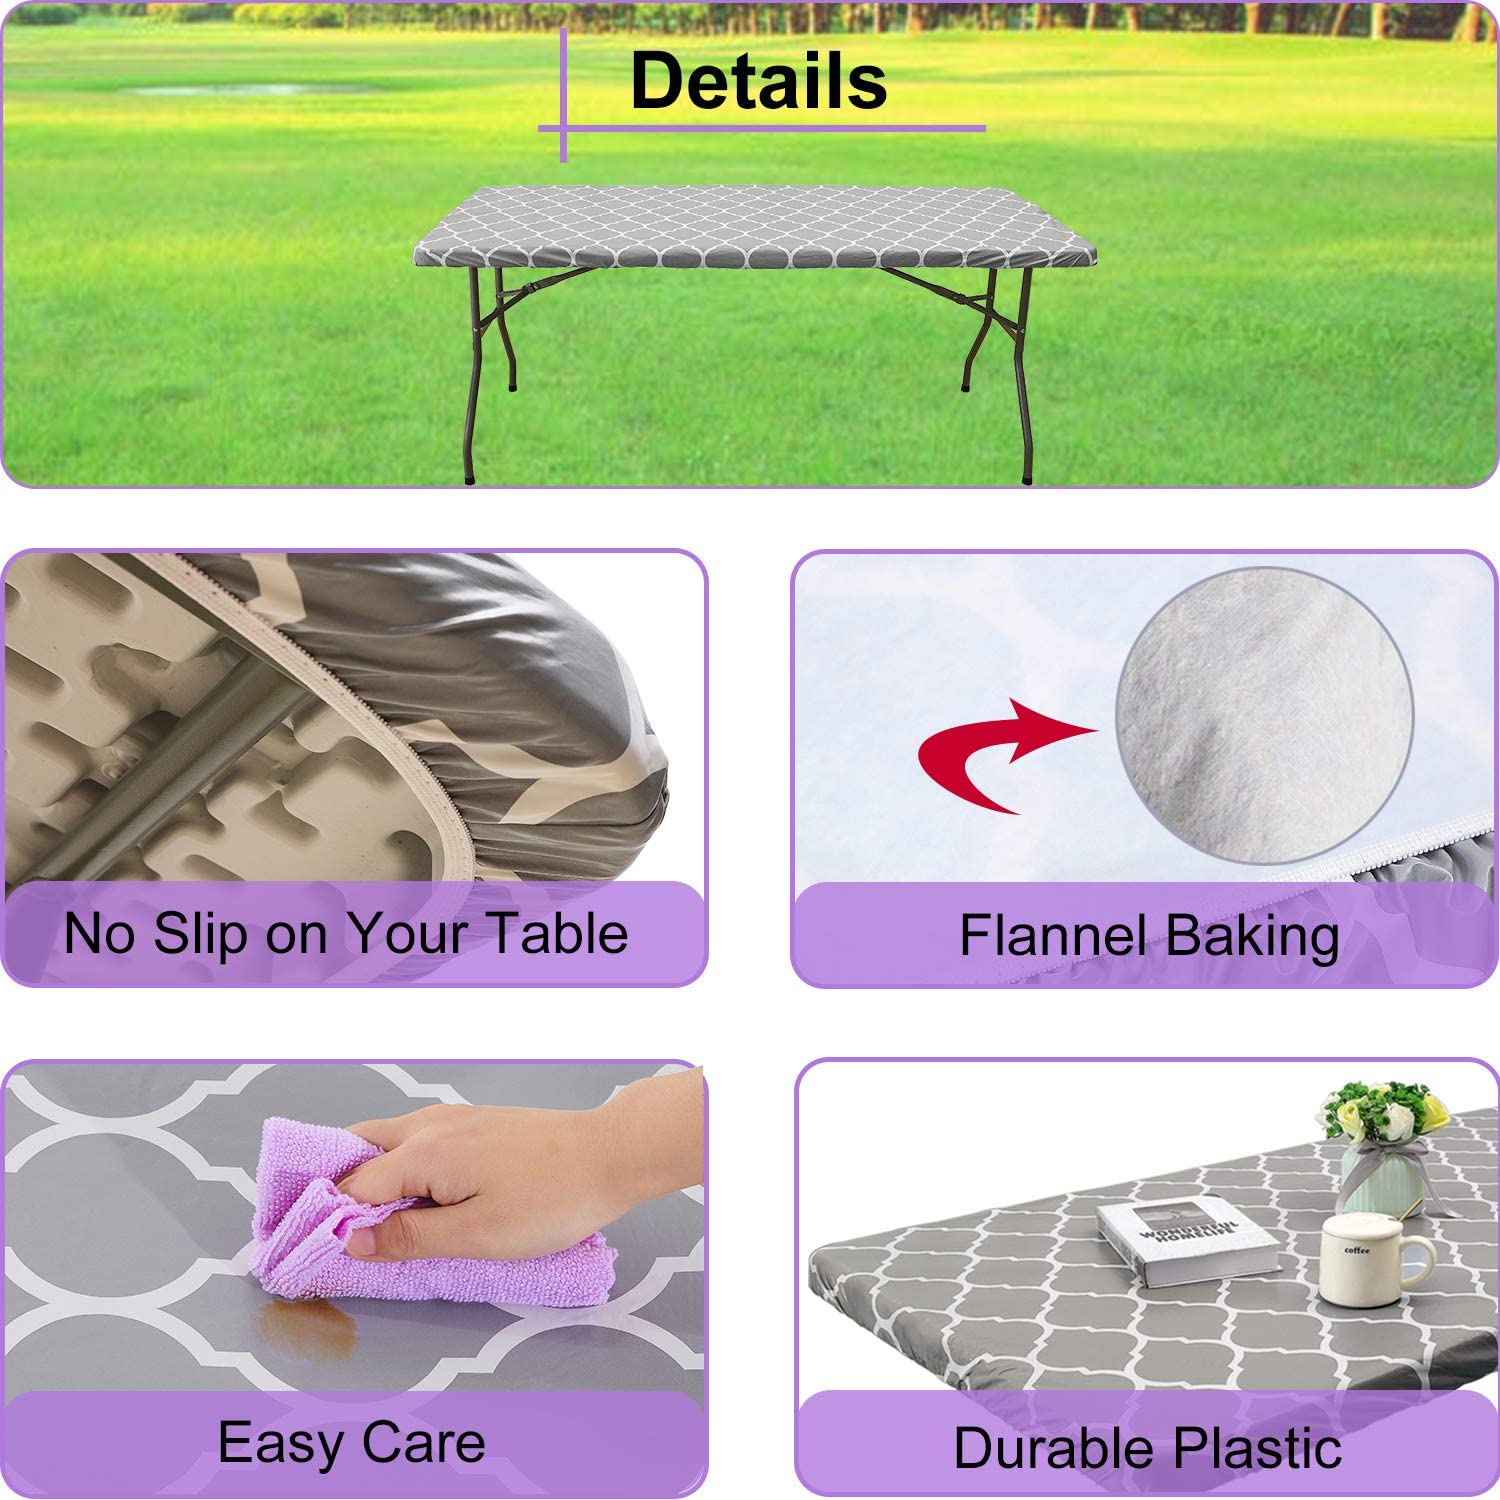 Fits 24 x 48 Inch Picnic Folding Table Waterproof Elastic Edge Vinyl Tablecloth with Flannel Baking for Outdoor Travel//Holiday//Party 4 ft Gray Moroccan Rectangular Fitted Plastic Table Cover